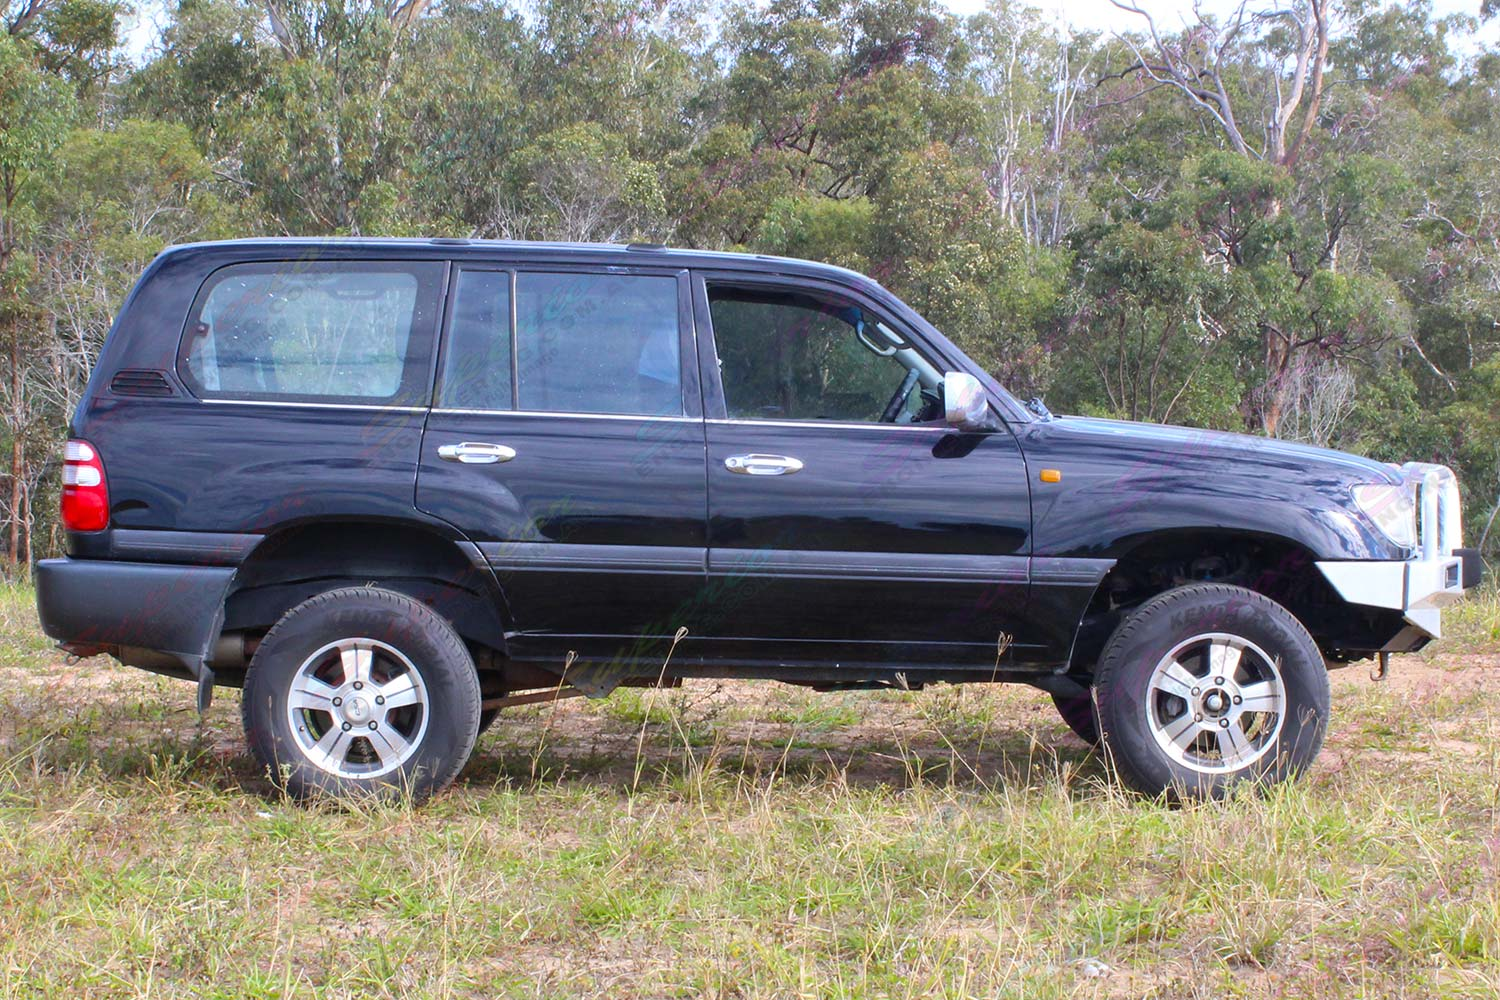 Right side view of a 100 Series Toyota Landcruiser after being fitted with a premium 2 inch Bilstein lift kit with air bags